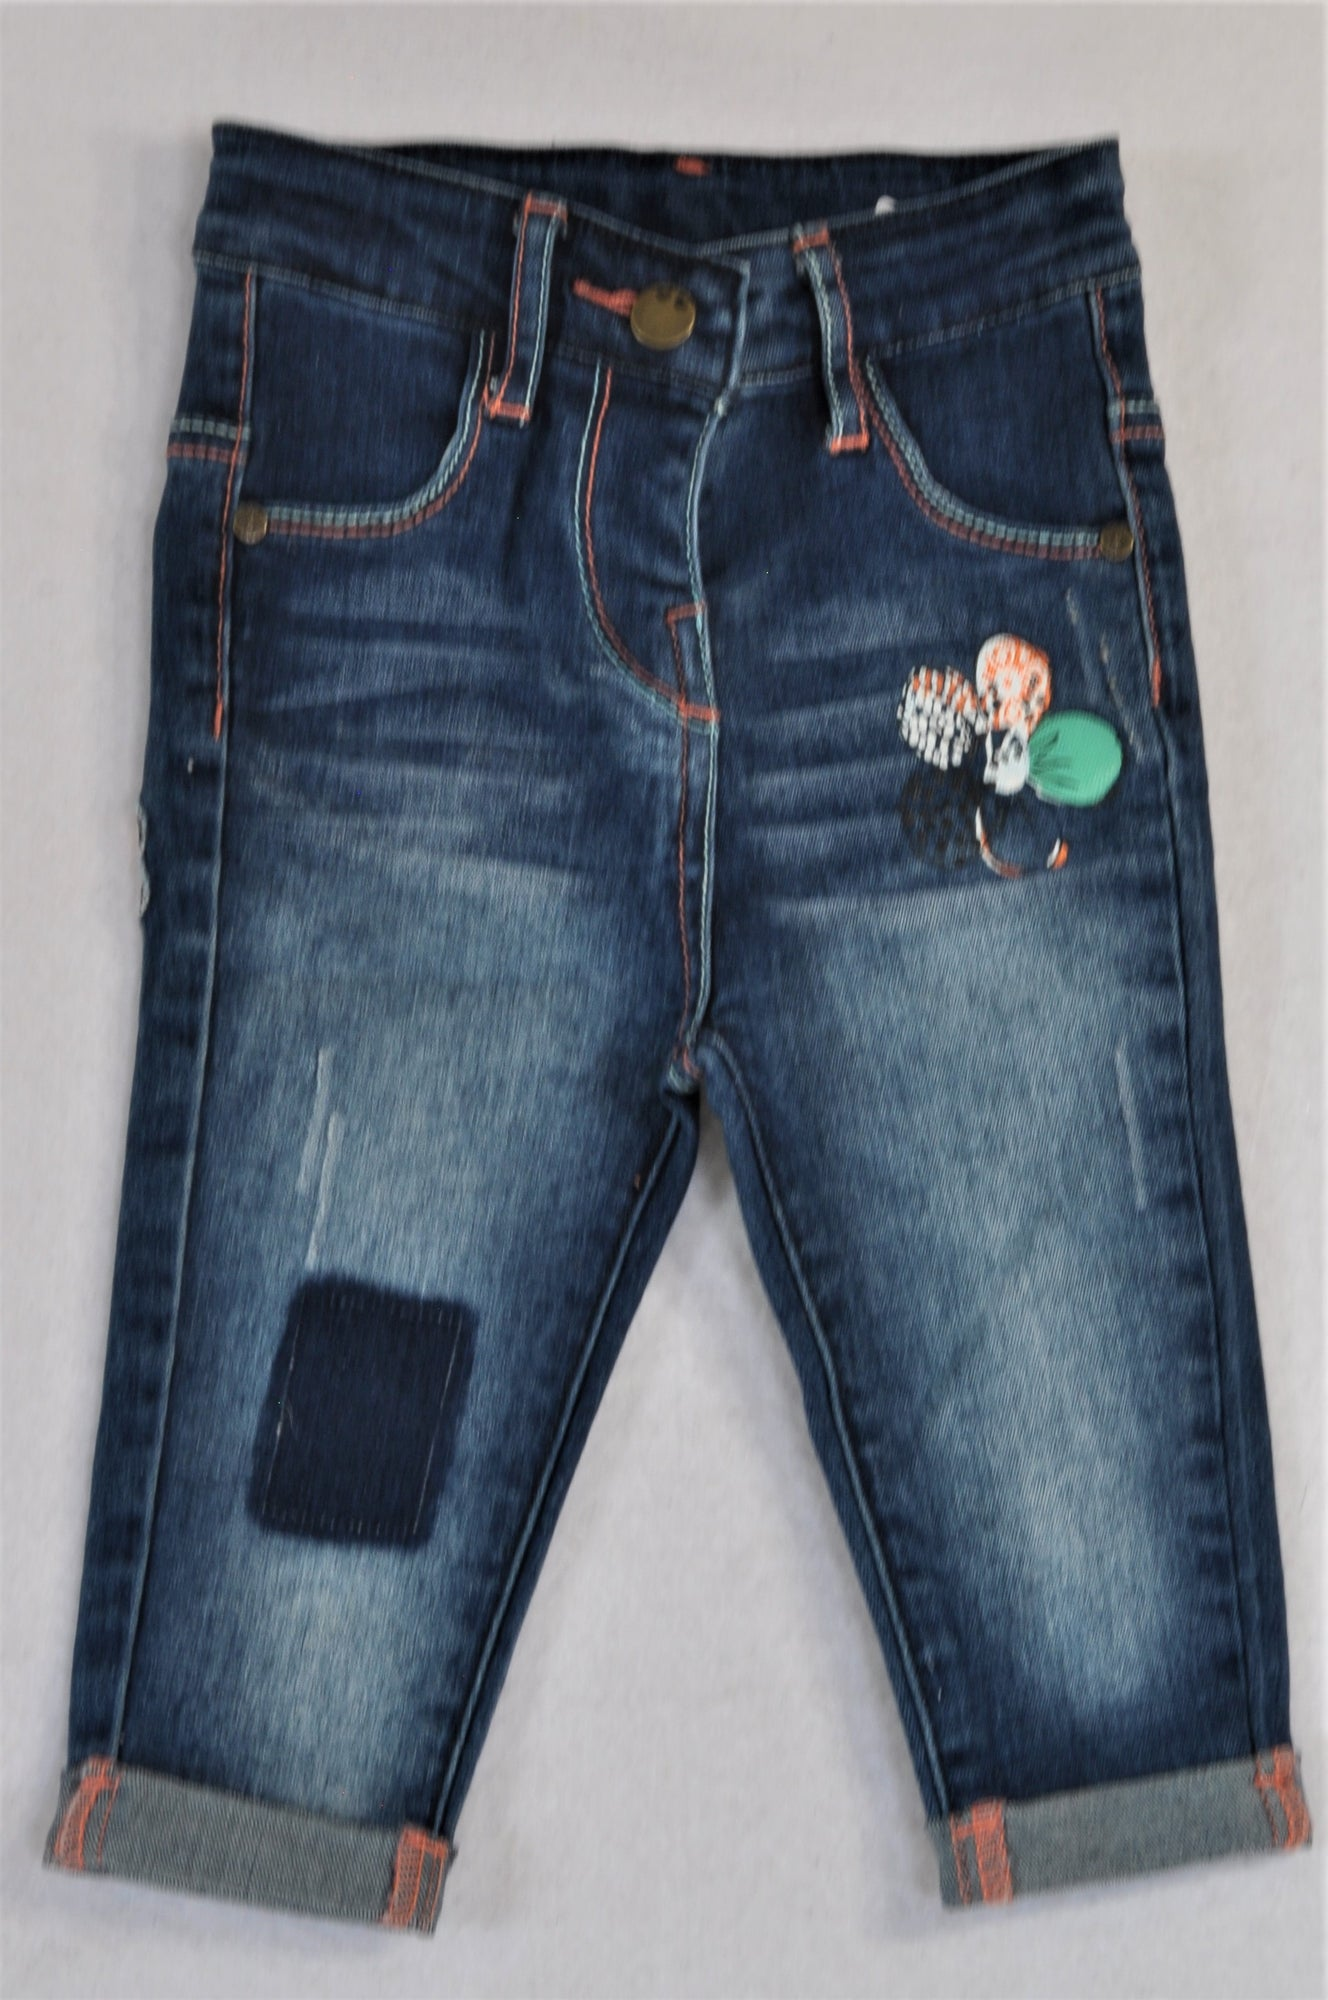 Woolworths Stone Washed Embroidered Flower Roll Up Jeans Girls 6-12 months